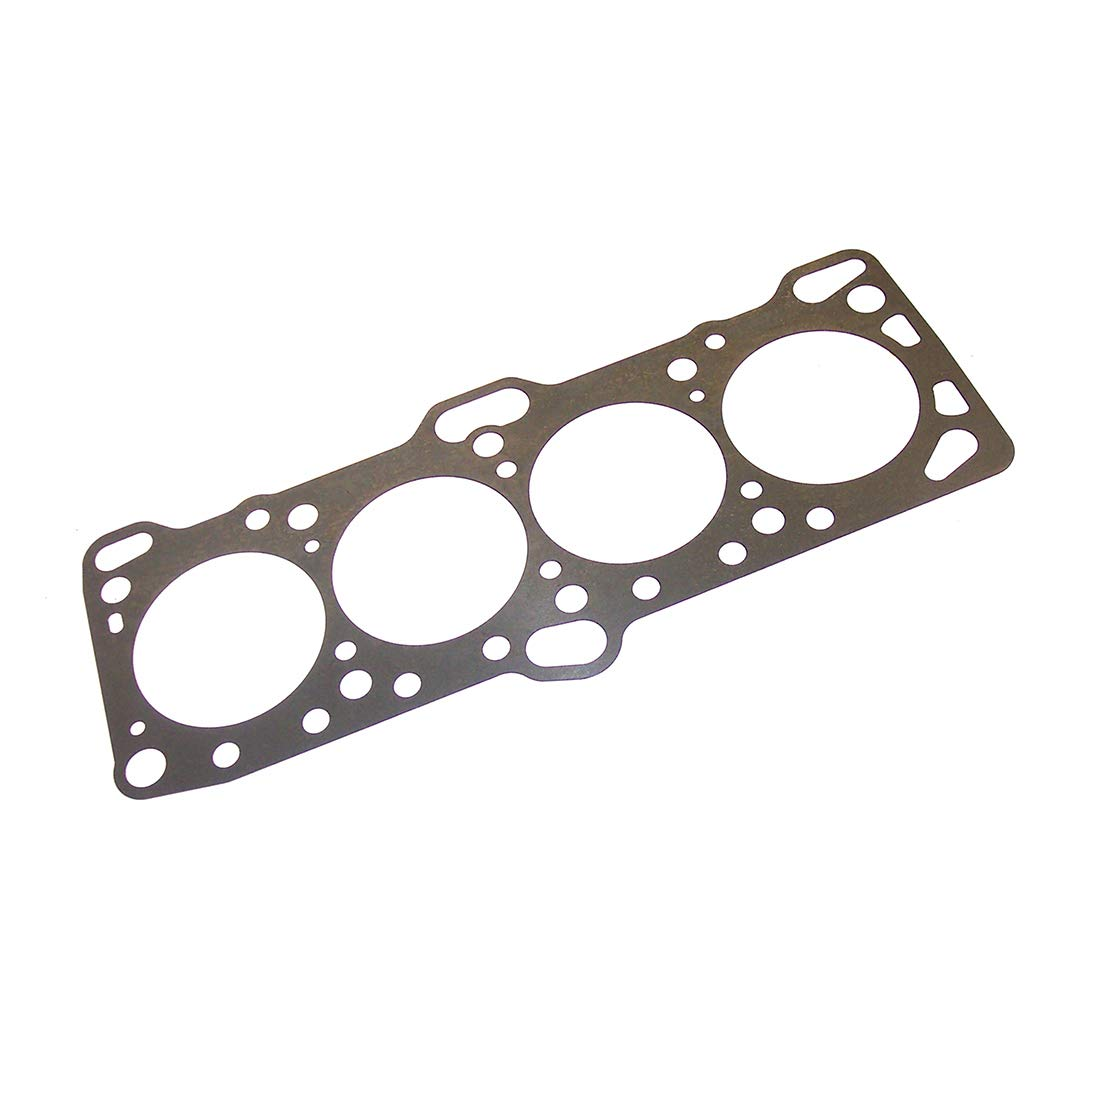 Galant Mitsubishi Plymouth//Colt Ram 50 Mirage Eagle Hyundai DNJ HS105 Head Spacer Shim for 1983-1999 // Dodge Laser Cordia Mighty Max Power Ram 50 Sonata Eclipse Elantra